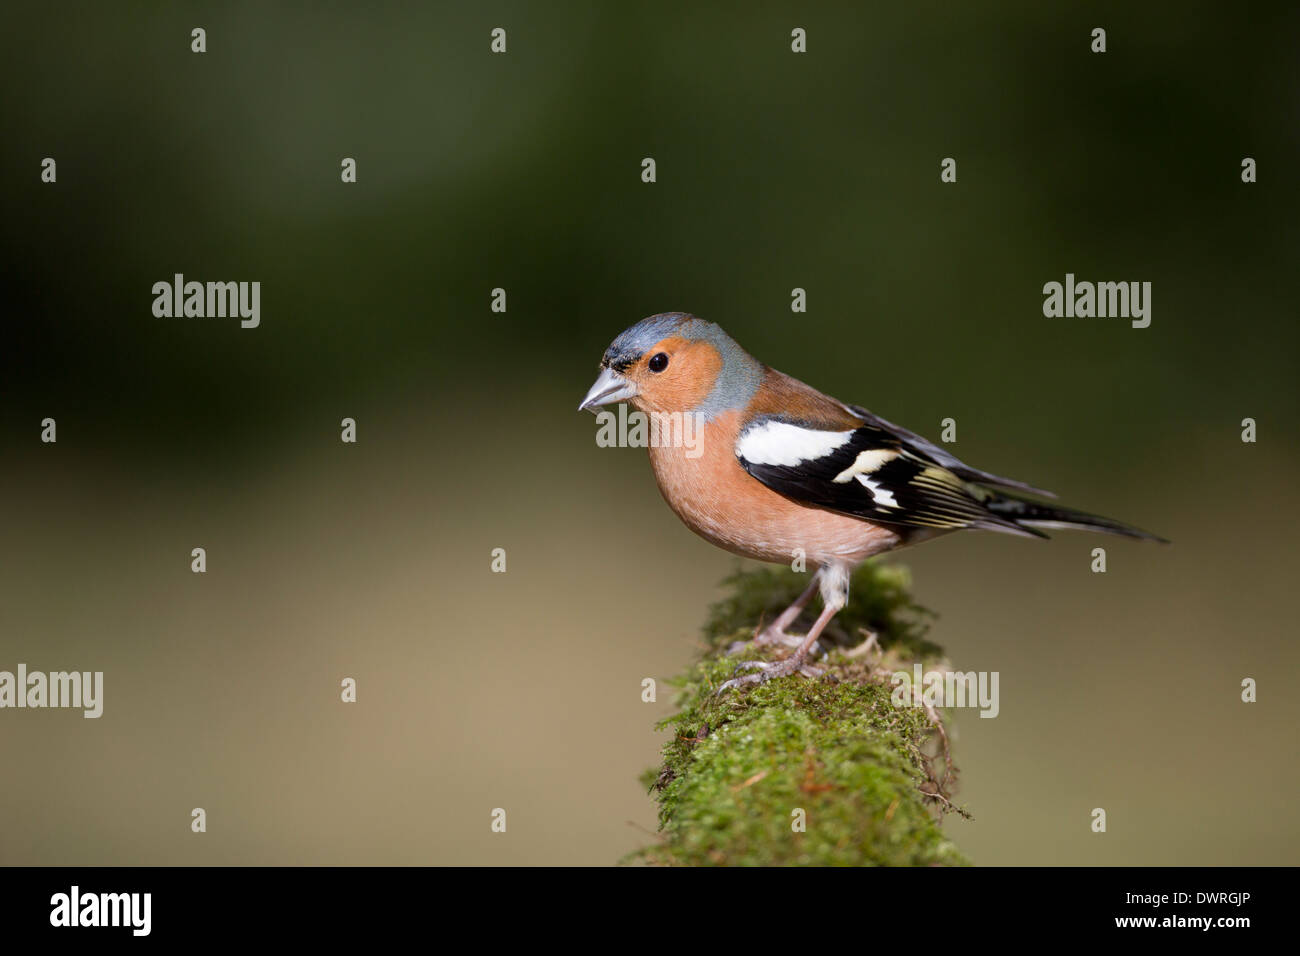 Chaffinch; Fringilla coelebs; Male; UK - Stock Image